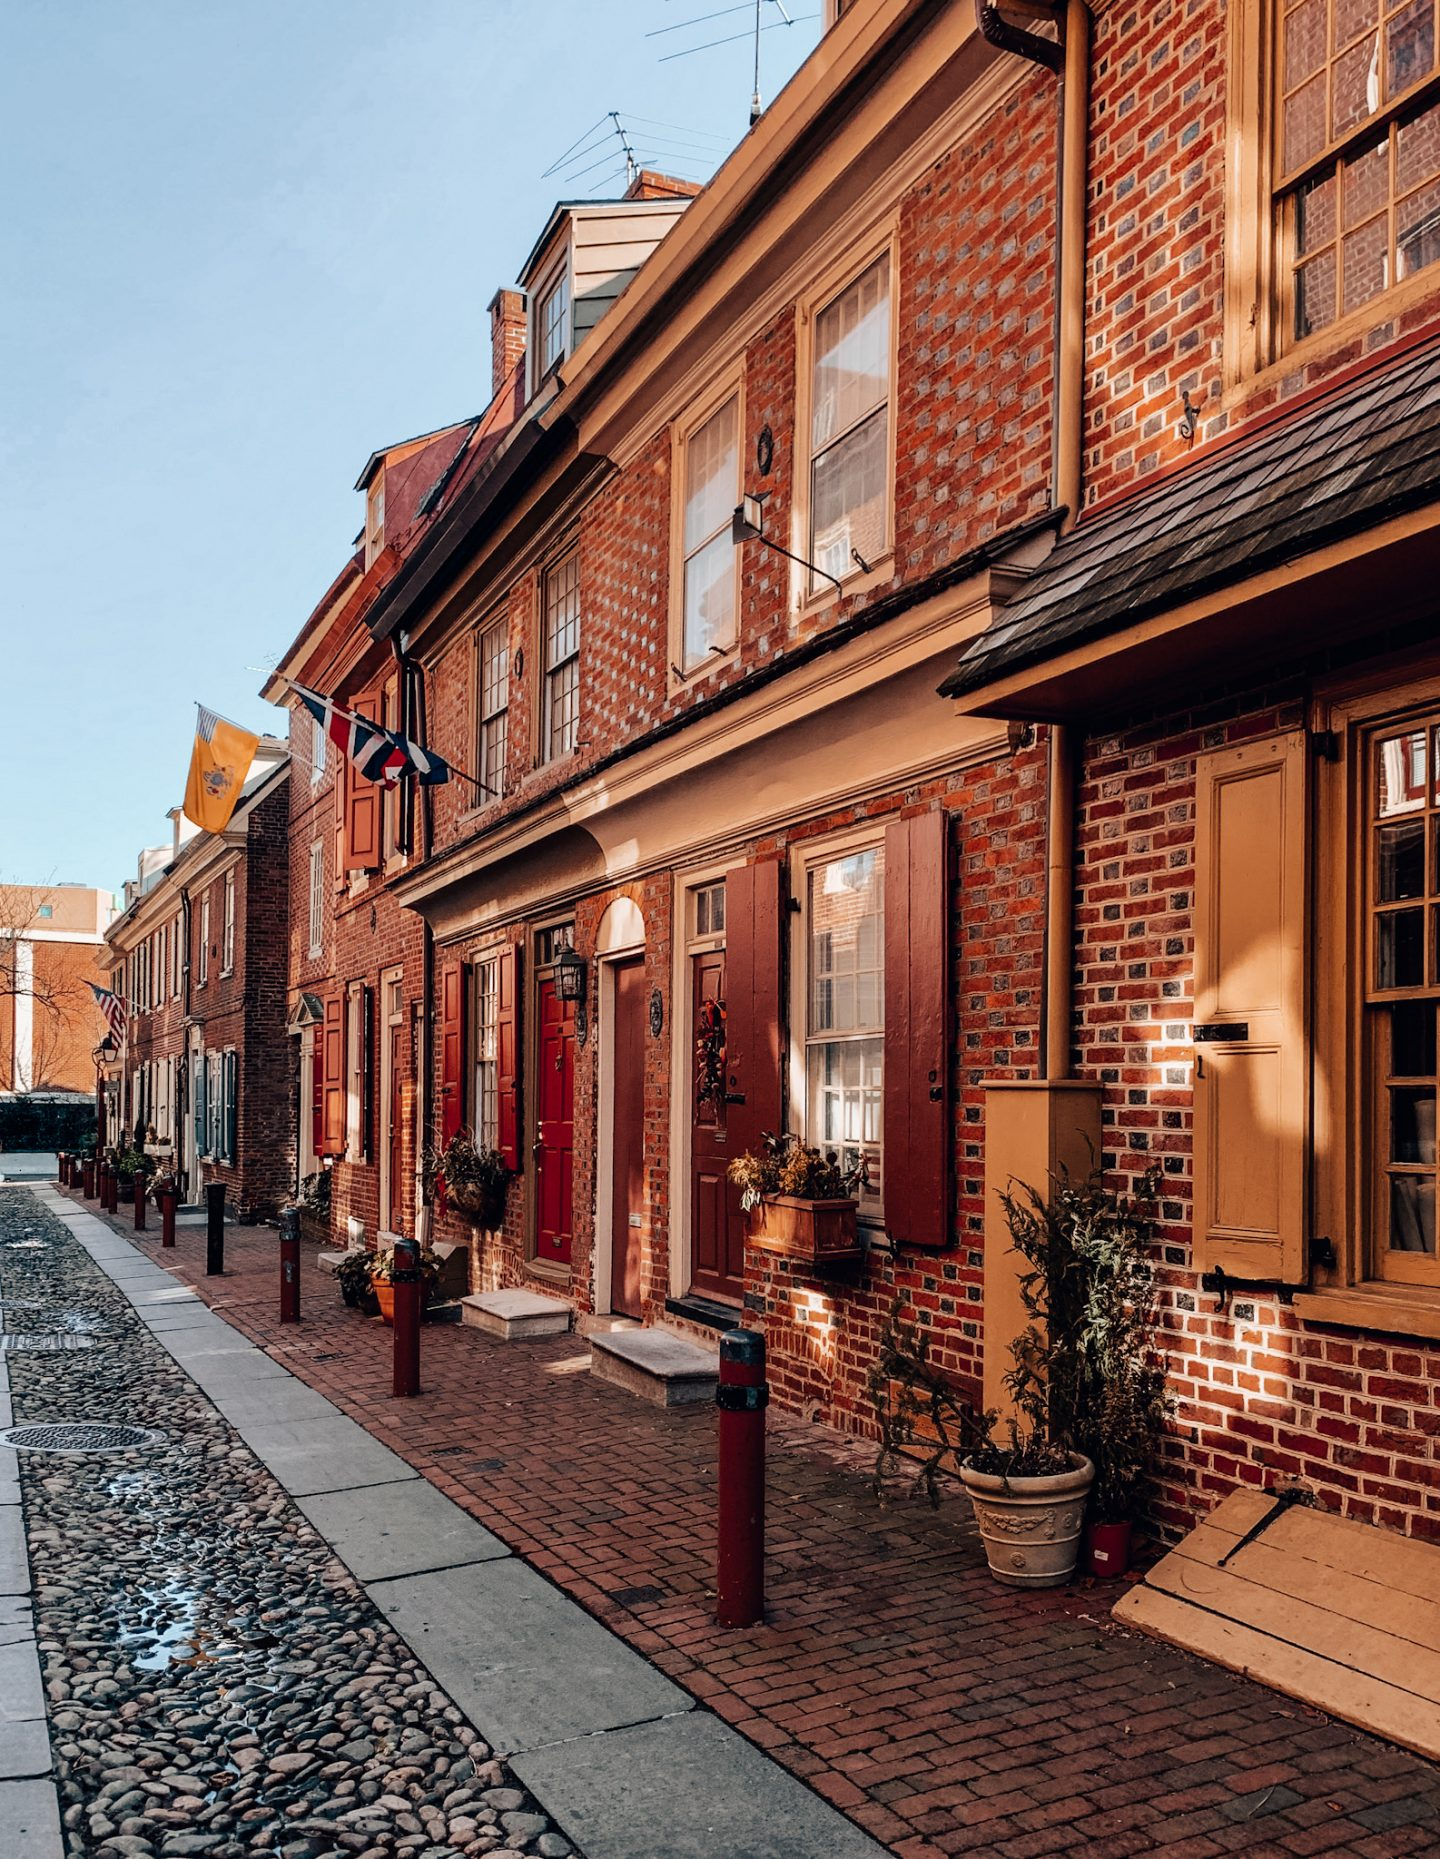 Elfreth's Alley in Philly!